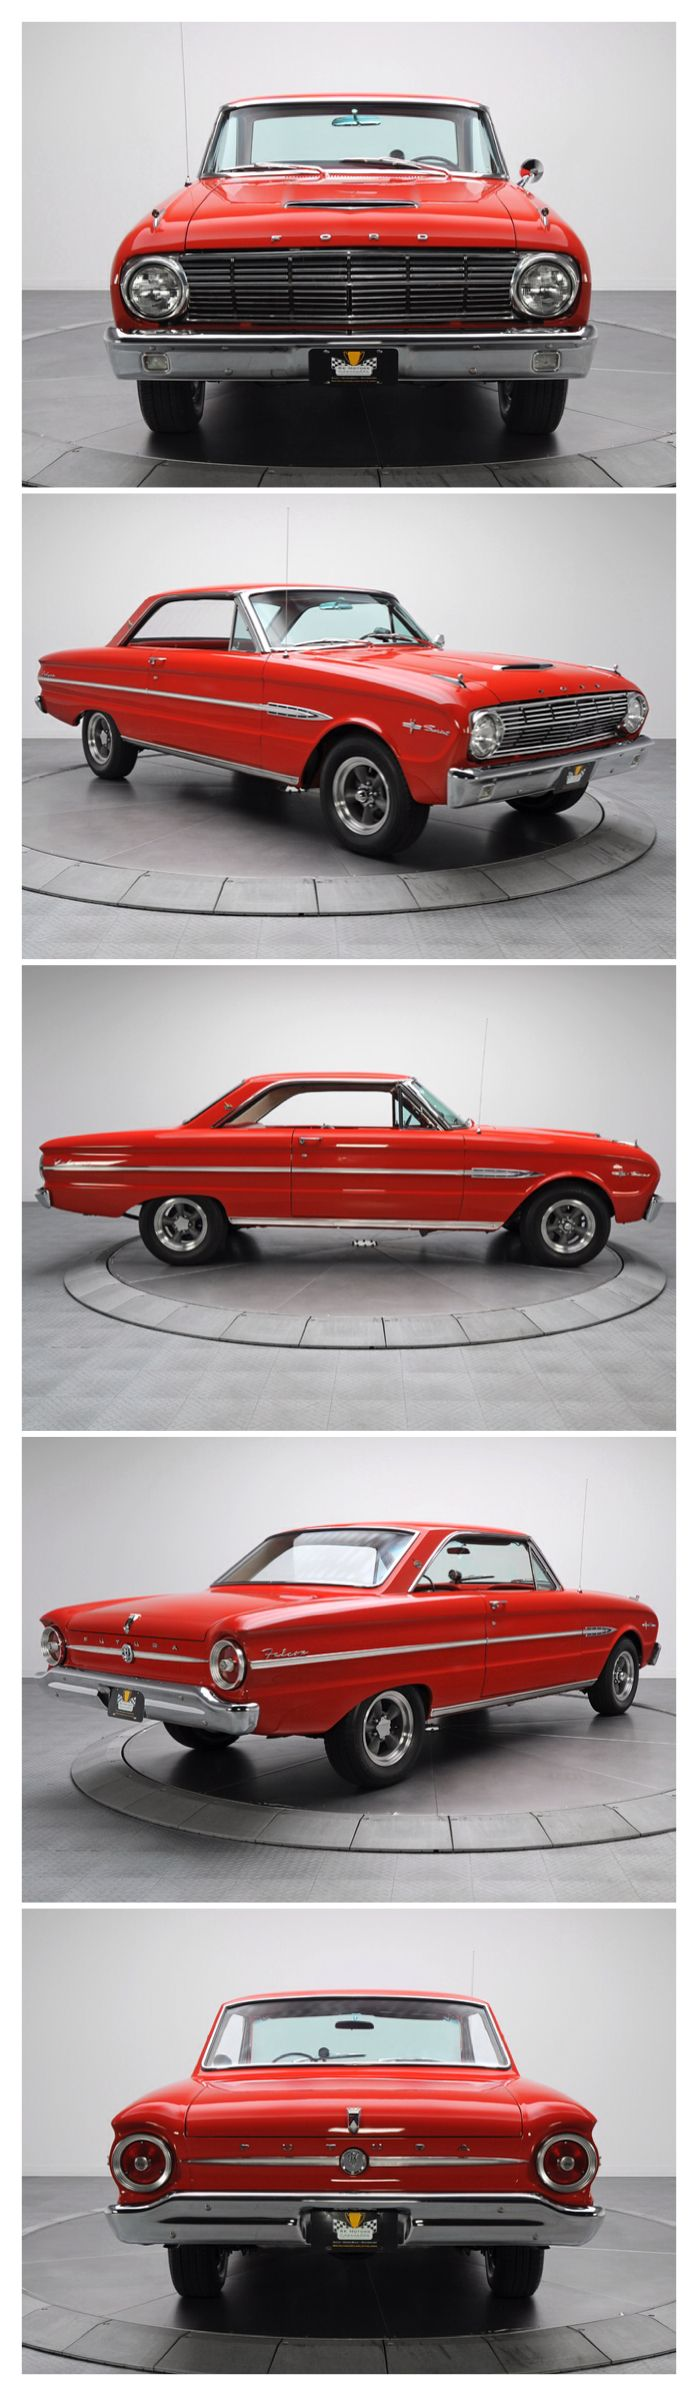 1961 ford falcon for sale racingjunk classifieds - 1963 Ford Falcon Futura Sprint